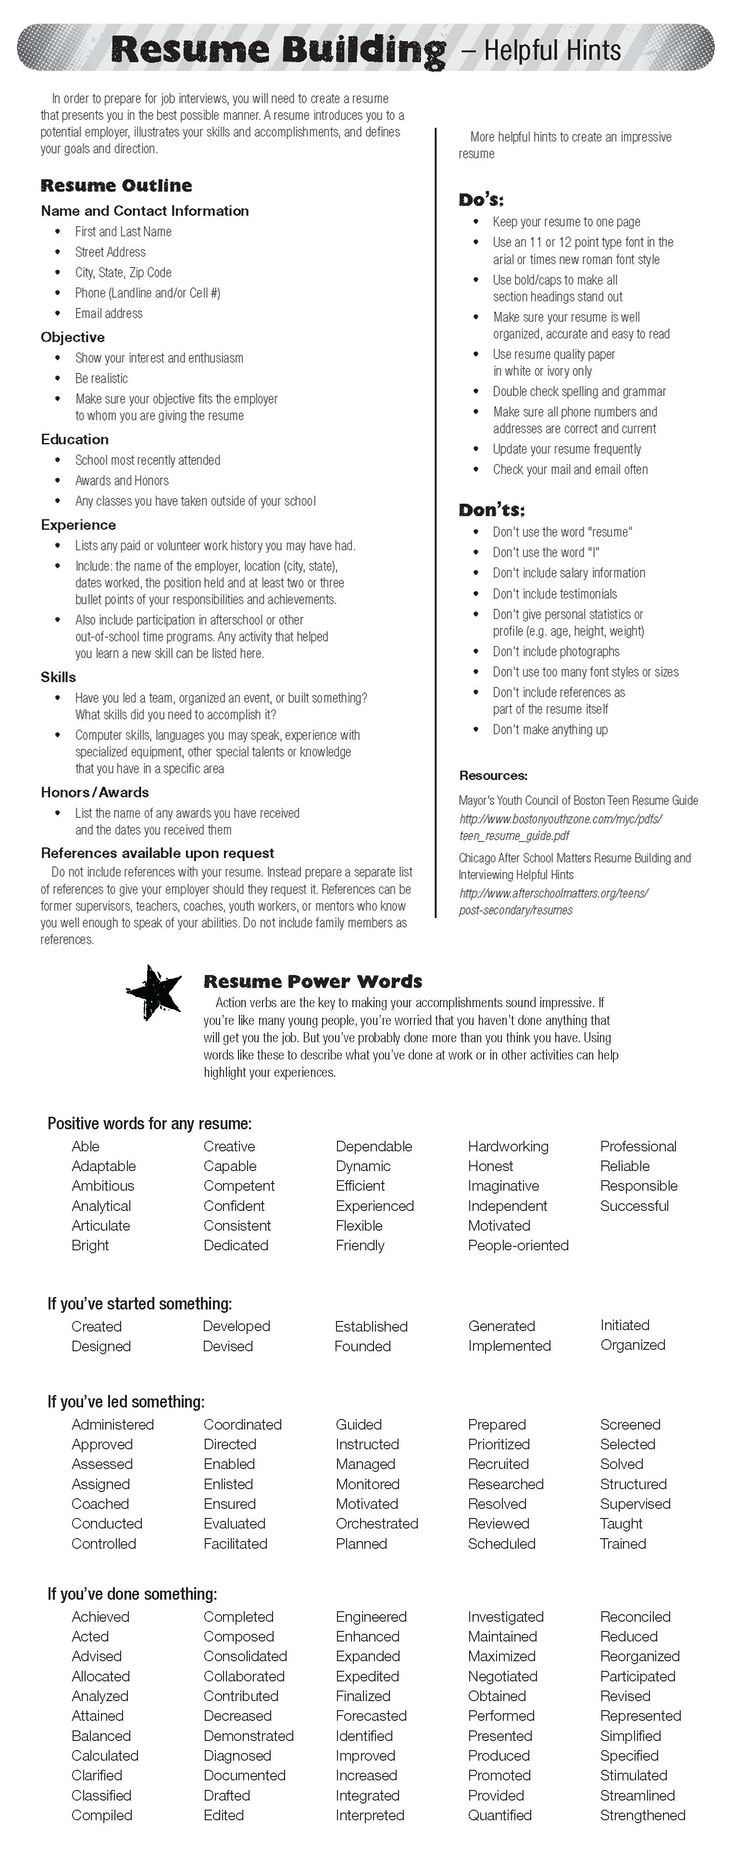 Opposenewapstandardsus  Unusual  Ideas About Resume On Pinterest  Cv Format Resume Cv And  With Inspiring  Ideas About Resume On Pinterest  Cv Format Resume Cv And Resume Templates With Breathtaking Account Manager Resume Also Should A Resume Be One Page In Addition Nursing Resume Examples And Photographer Resume As Well As How To Do A Resume For A Job Additionally How To Make A Resume For Free From Pinterestcom With Opposenewapstandardsus  Inspiring  Ideas About Resume On Pinterest  Cv Format Resume Cv And  With Breathtaking  Ideas About Resume On Pinterest  Cv Format Resume Cv And Resume Templates And Unusual Account Manager Resume Also Should A Resume Be One Page In Addition Nursing Resume Examples From Pinterestcom